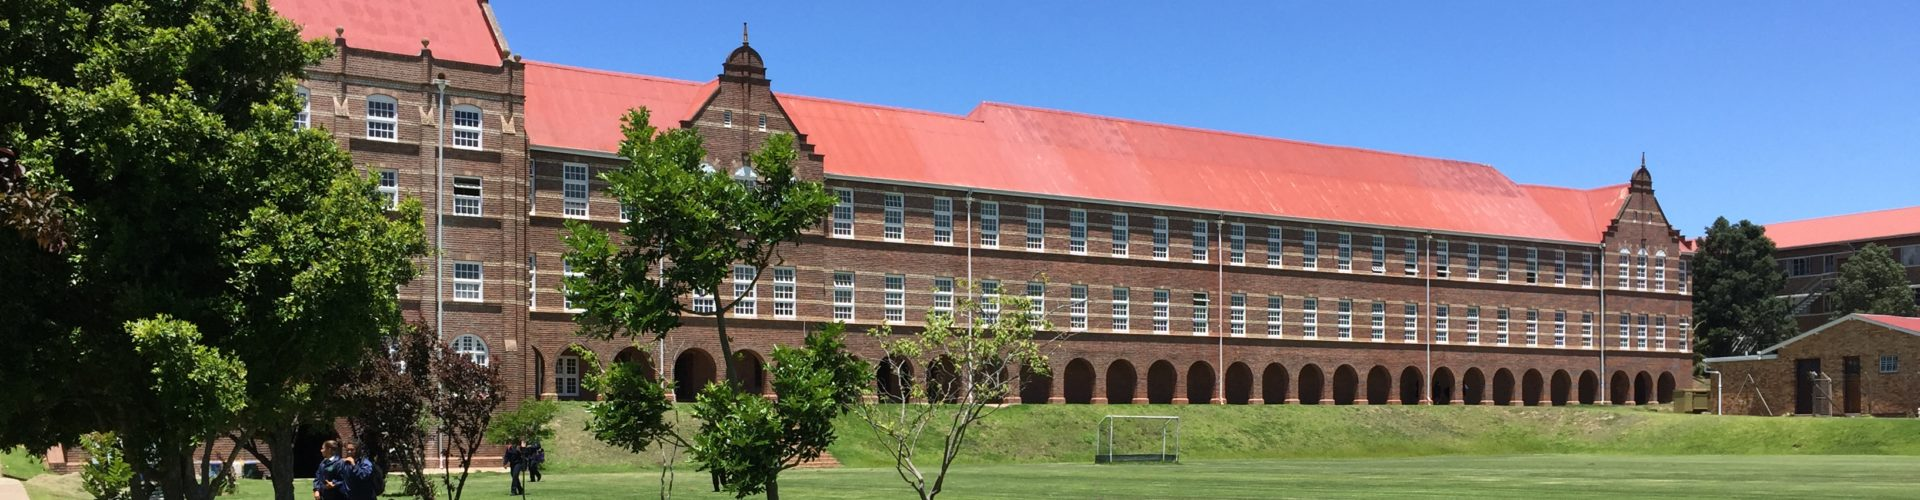 Victoria Girls' High School